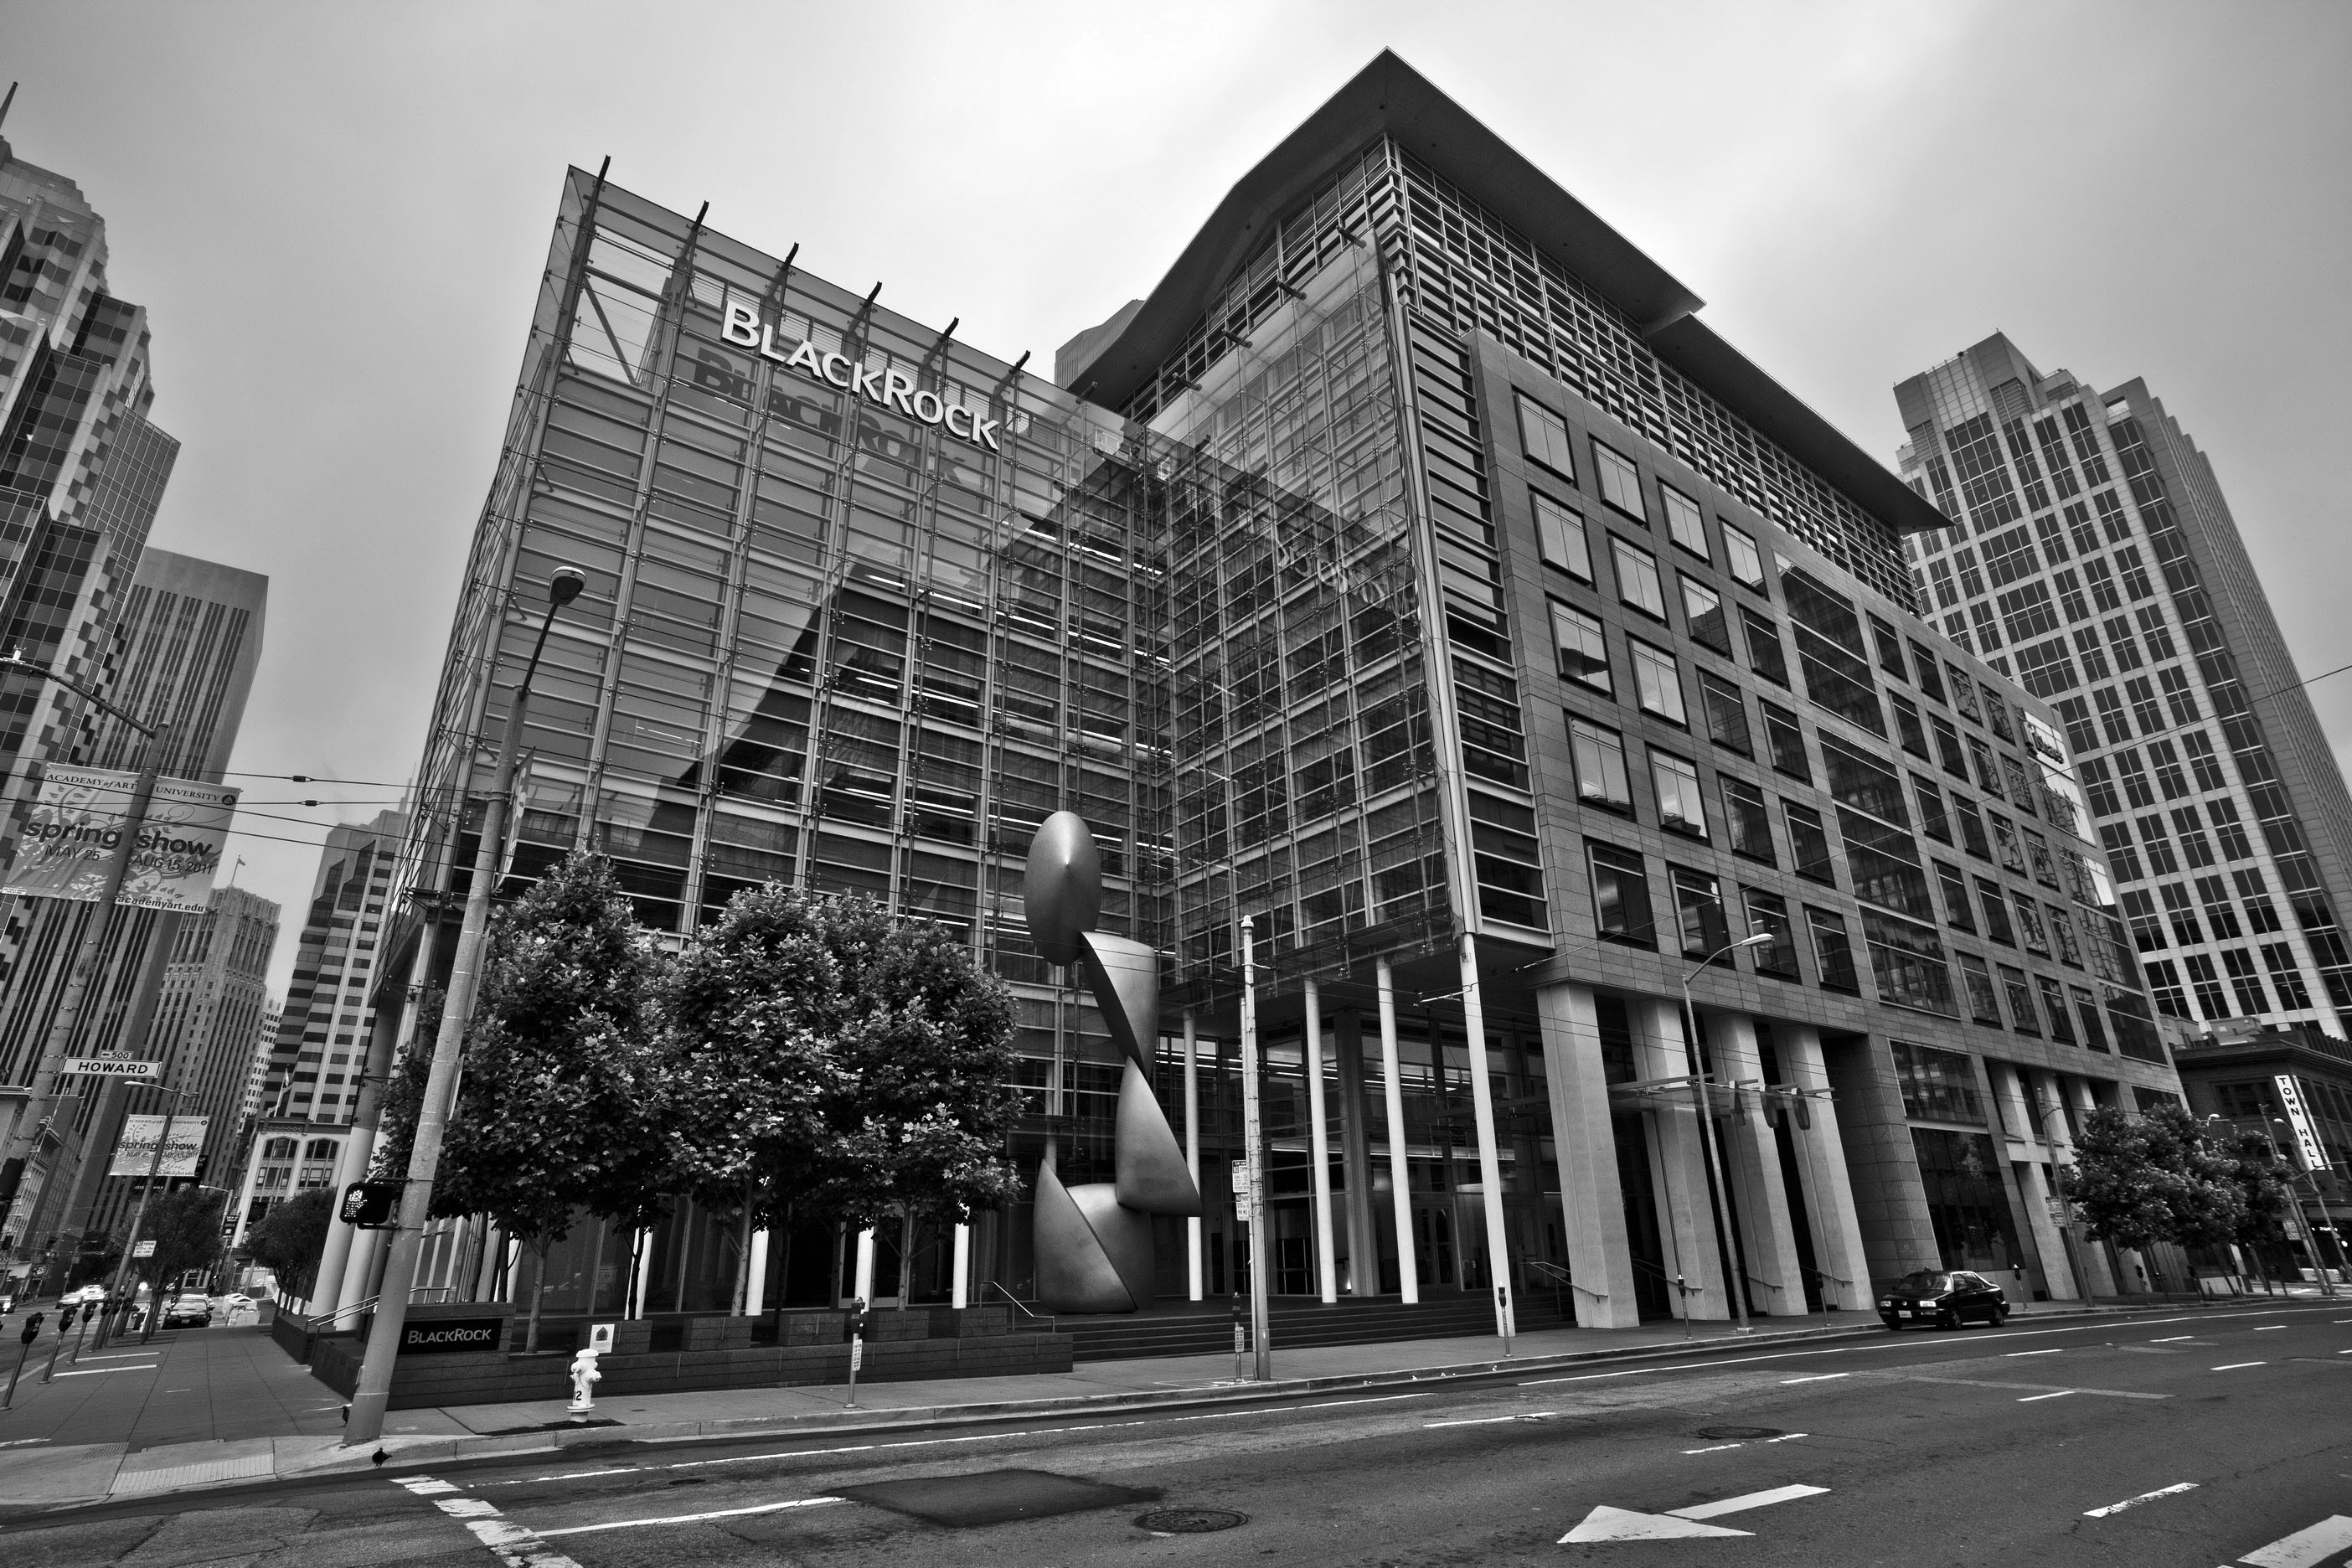 Architecture Blackrock and iStock Bldg cnr Howard and Fremont St San Francisco CA July 2011 02